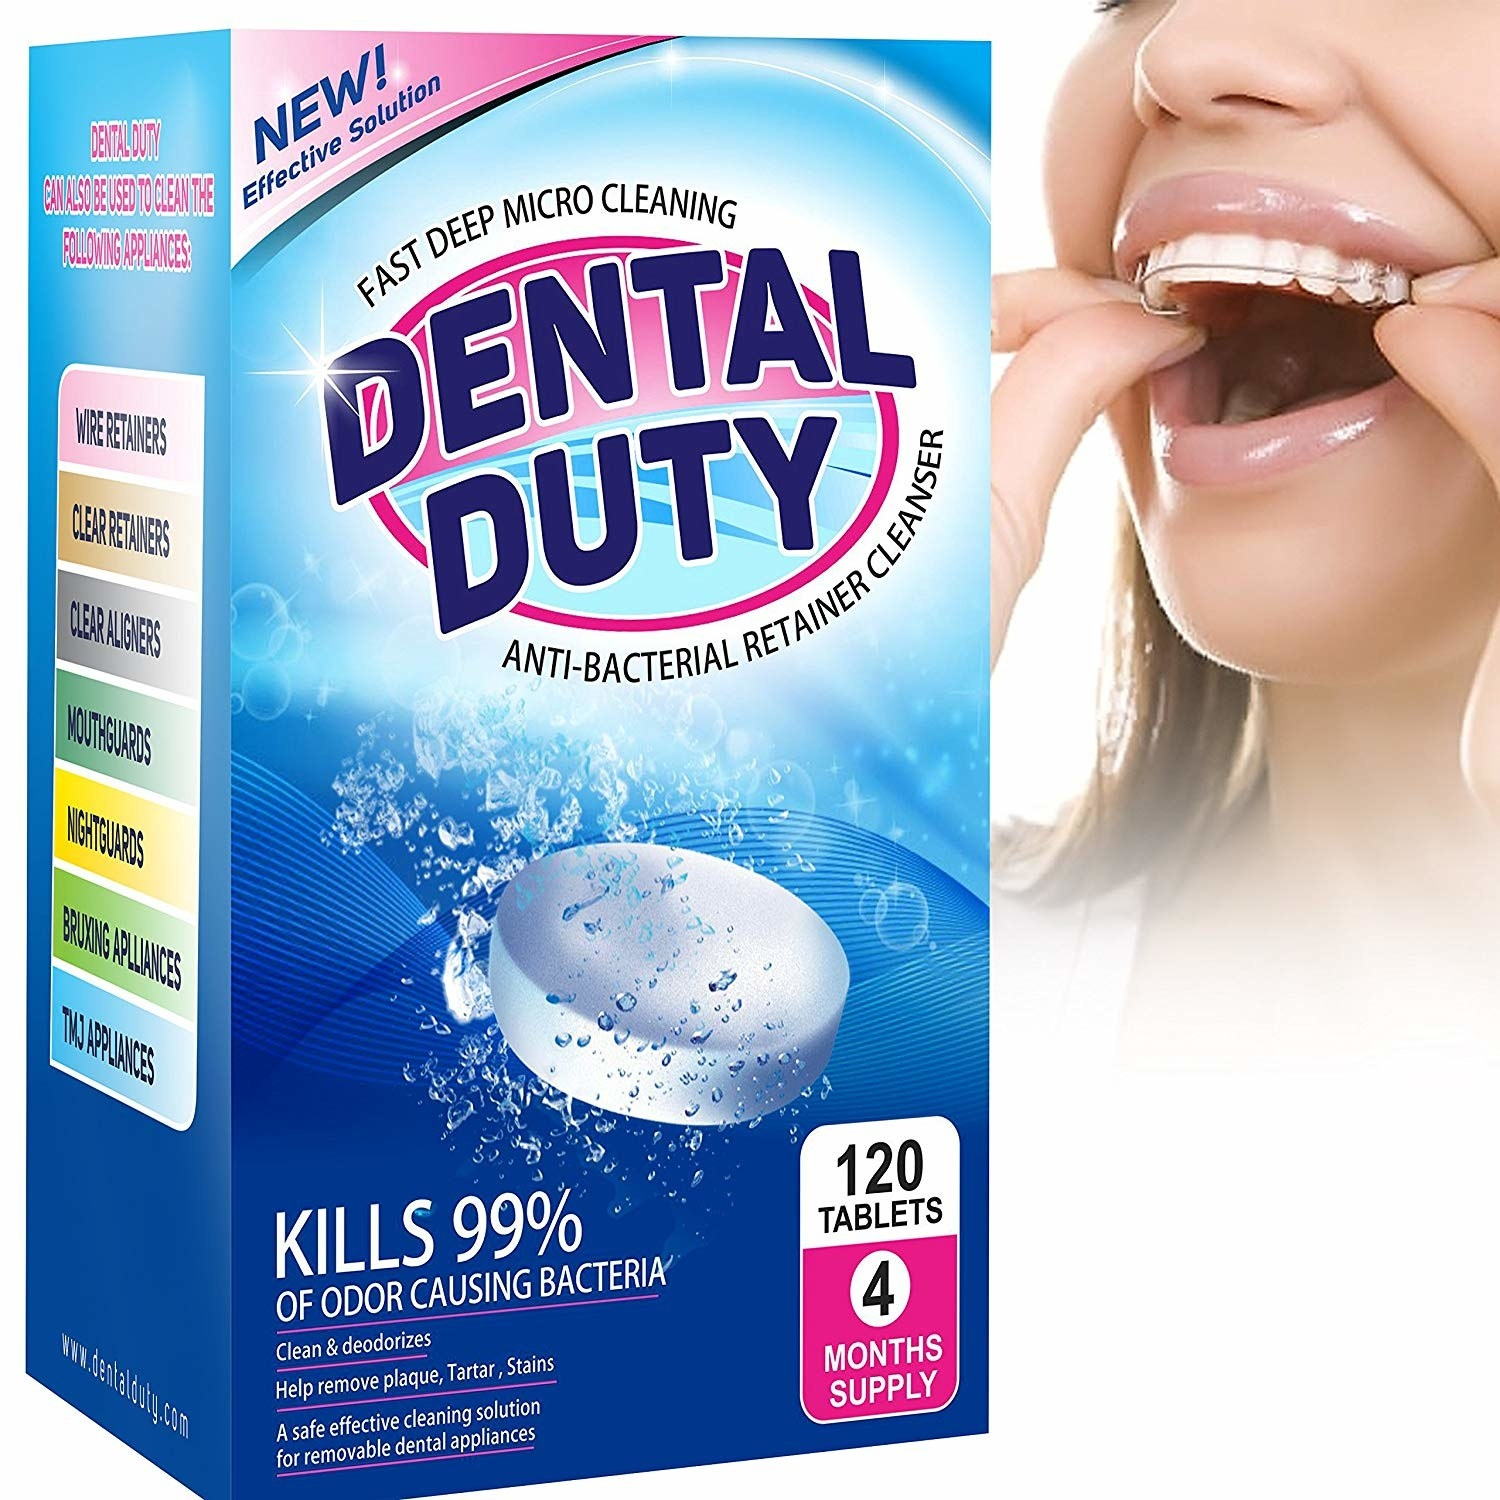 """SO HOW DOES THIS WORK? Drop a tablet into warm water, add in your retainer, and leave it in for about 15 minutes. The result? A clean, fresh, odorless retainer. Psst, these tablets also work for dentures, night guards, and Invisalign. Promising review: """"This stuff cleans so thoroughly and gets rid of the nasty smell that my aligners were getting. So glad I bought this!""""—Subway ReaderGet a pack of 120 from Amazon for $14.99."""